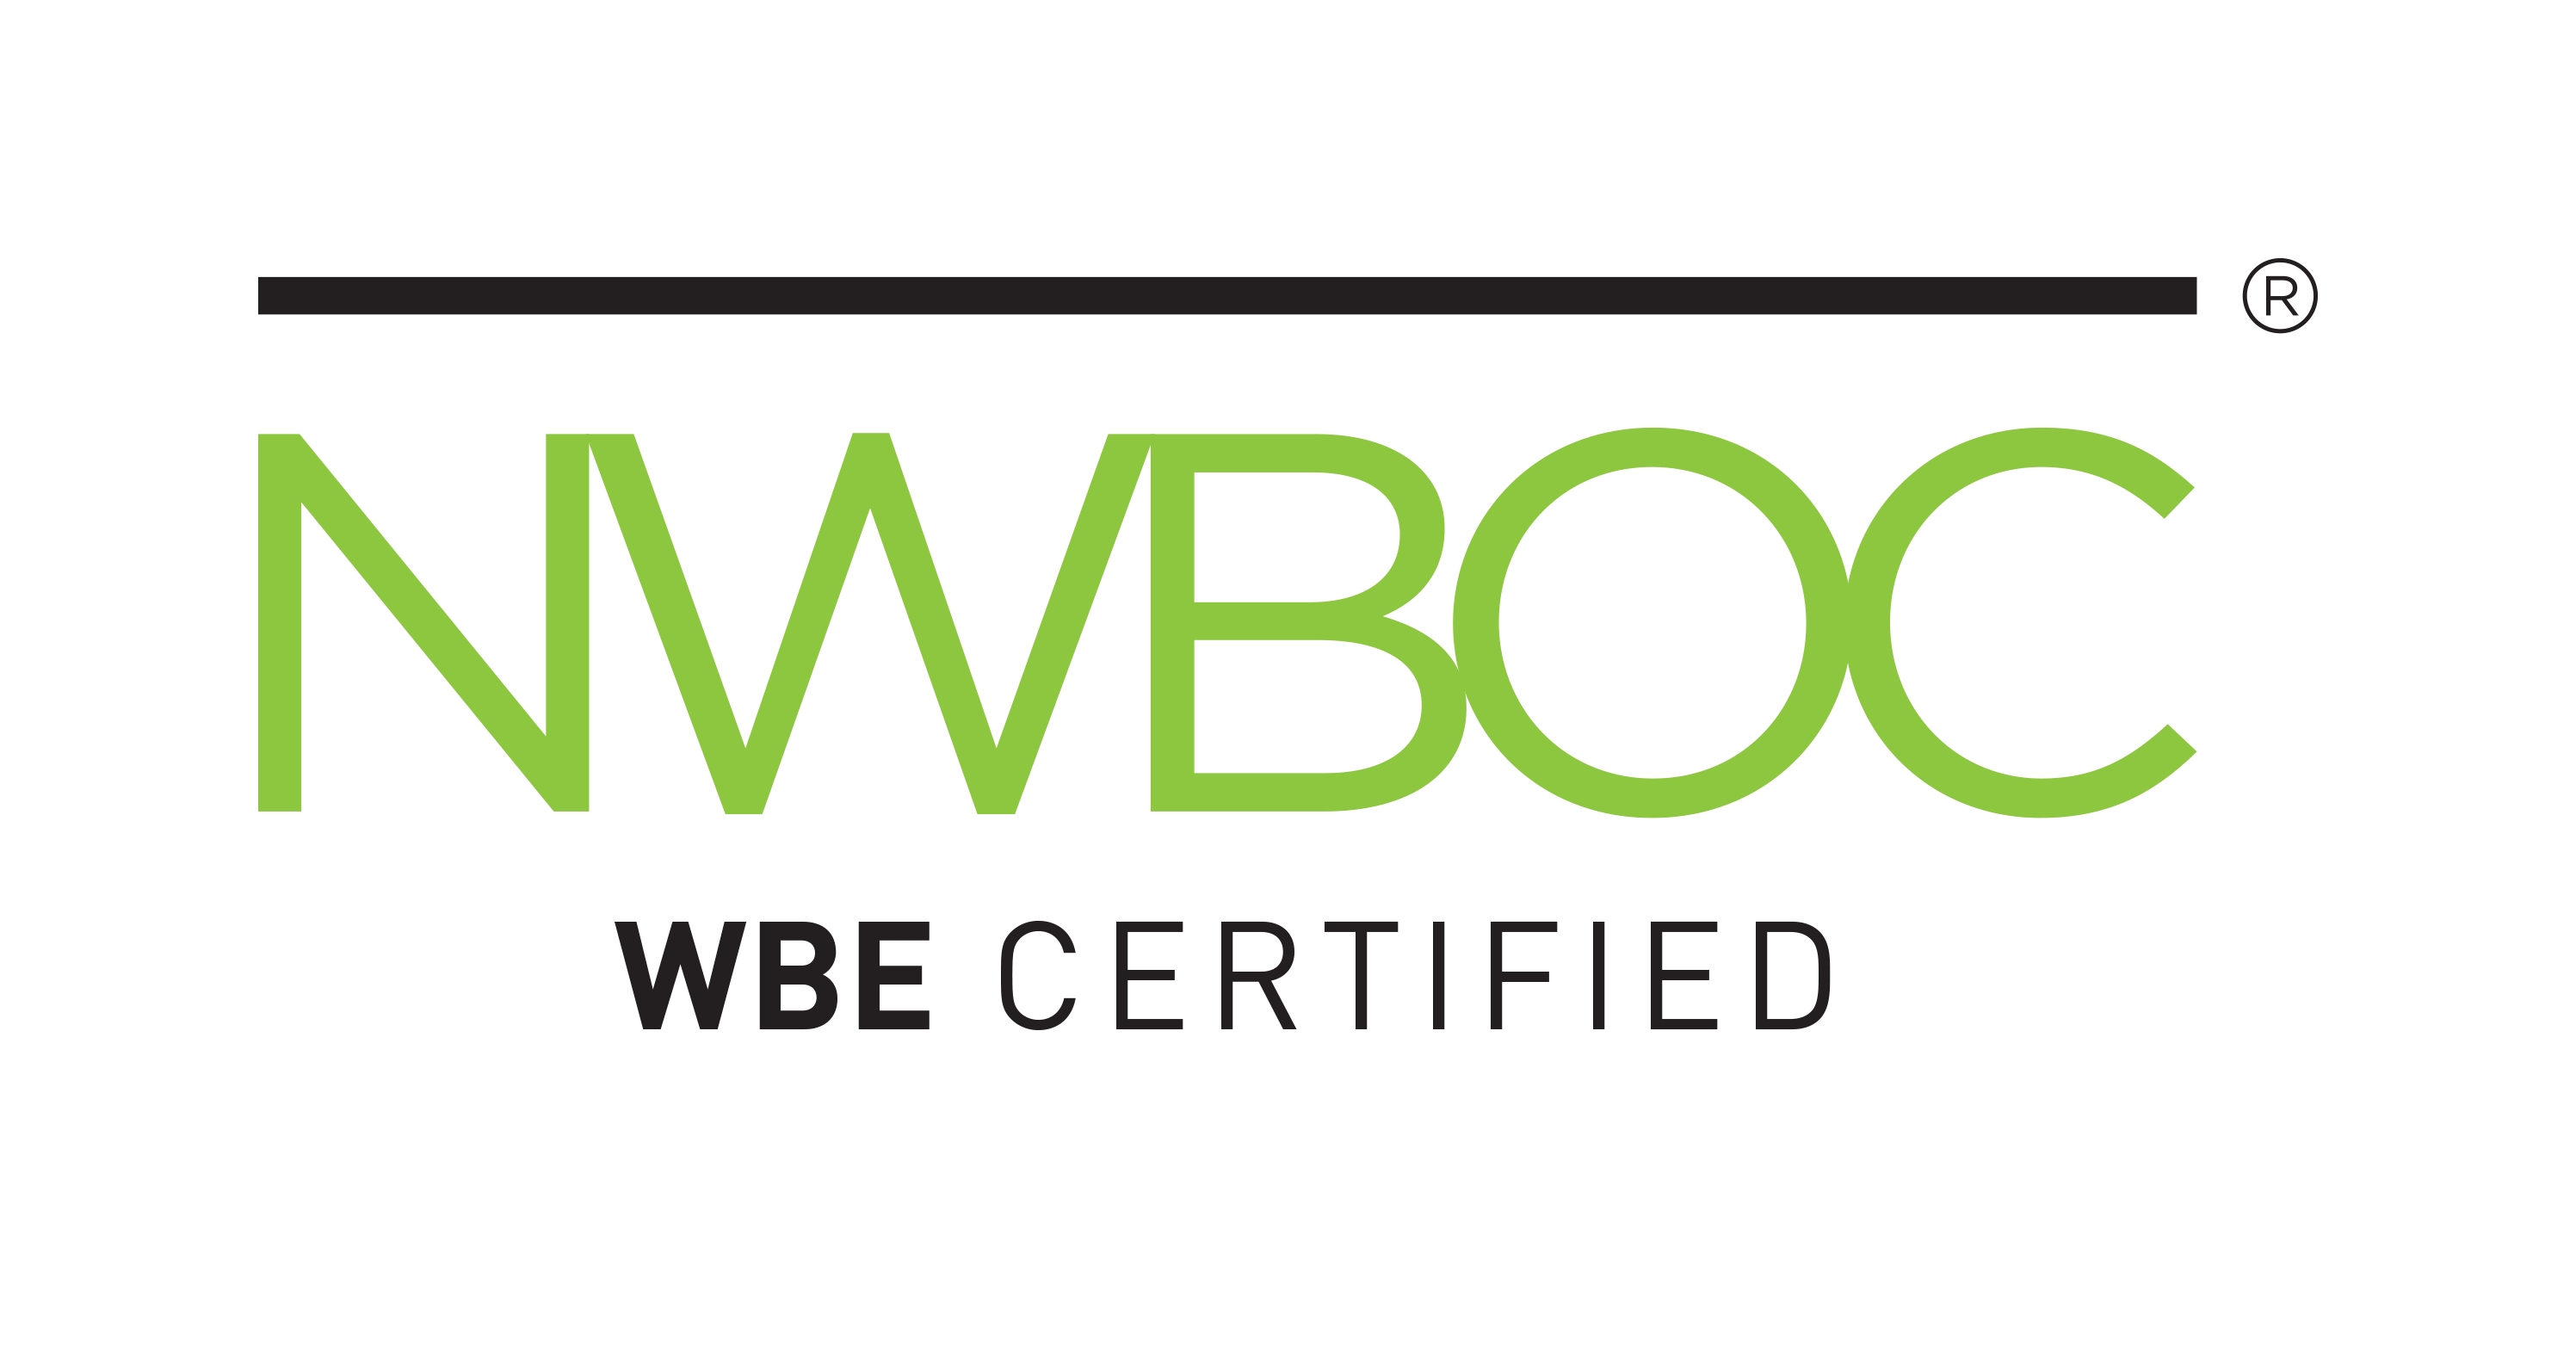 NWBOC Women-CERTIFIED Business